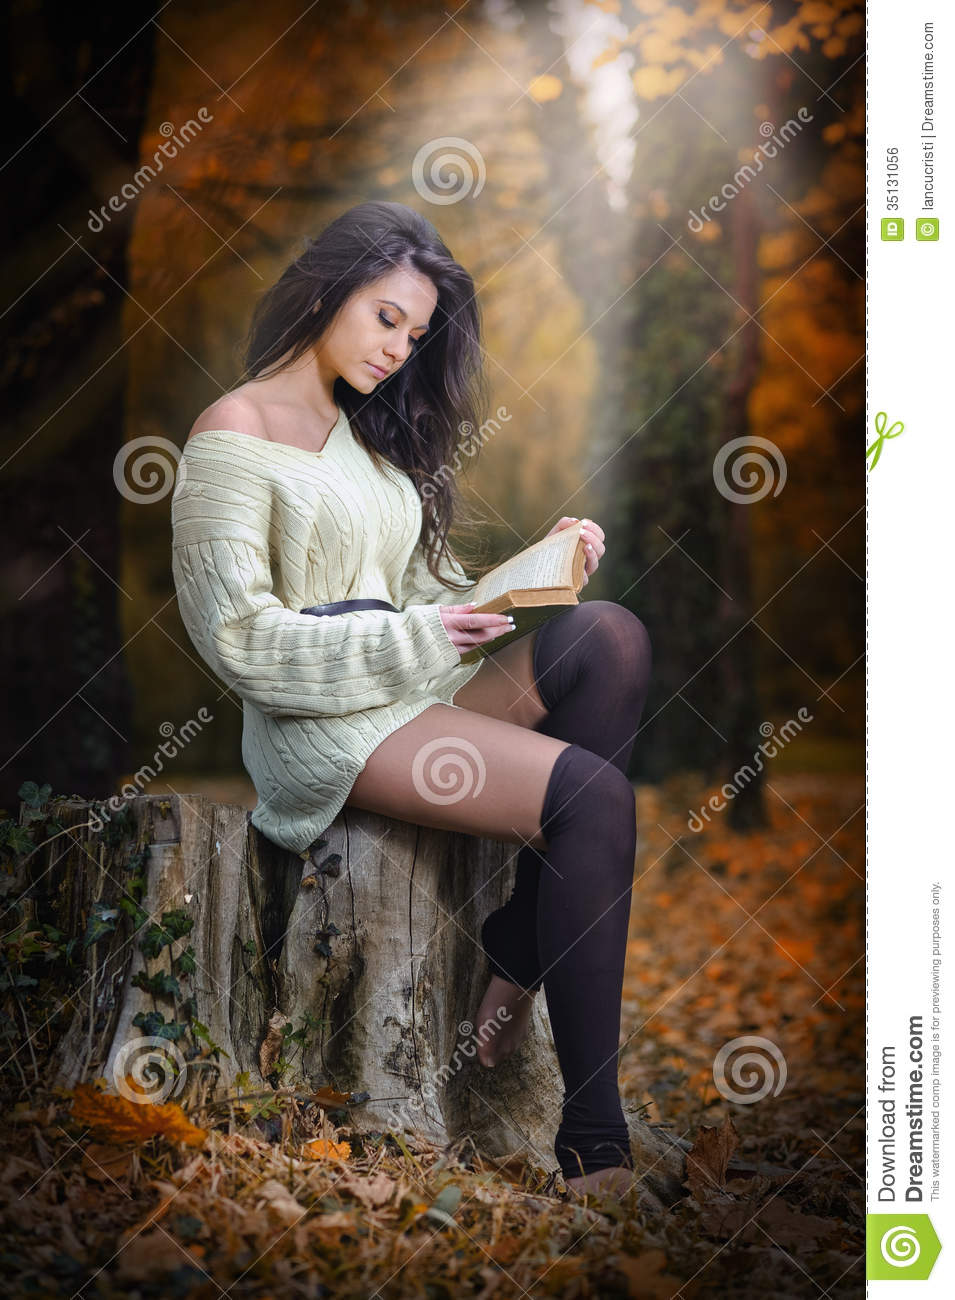 Young Caucasian Sensual Woman Reading A Book In A Romantic